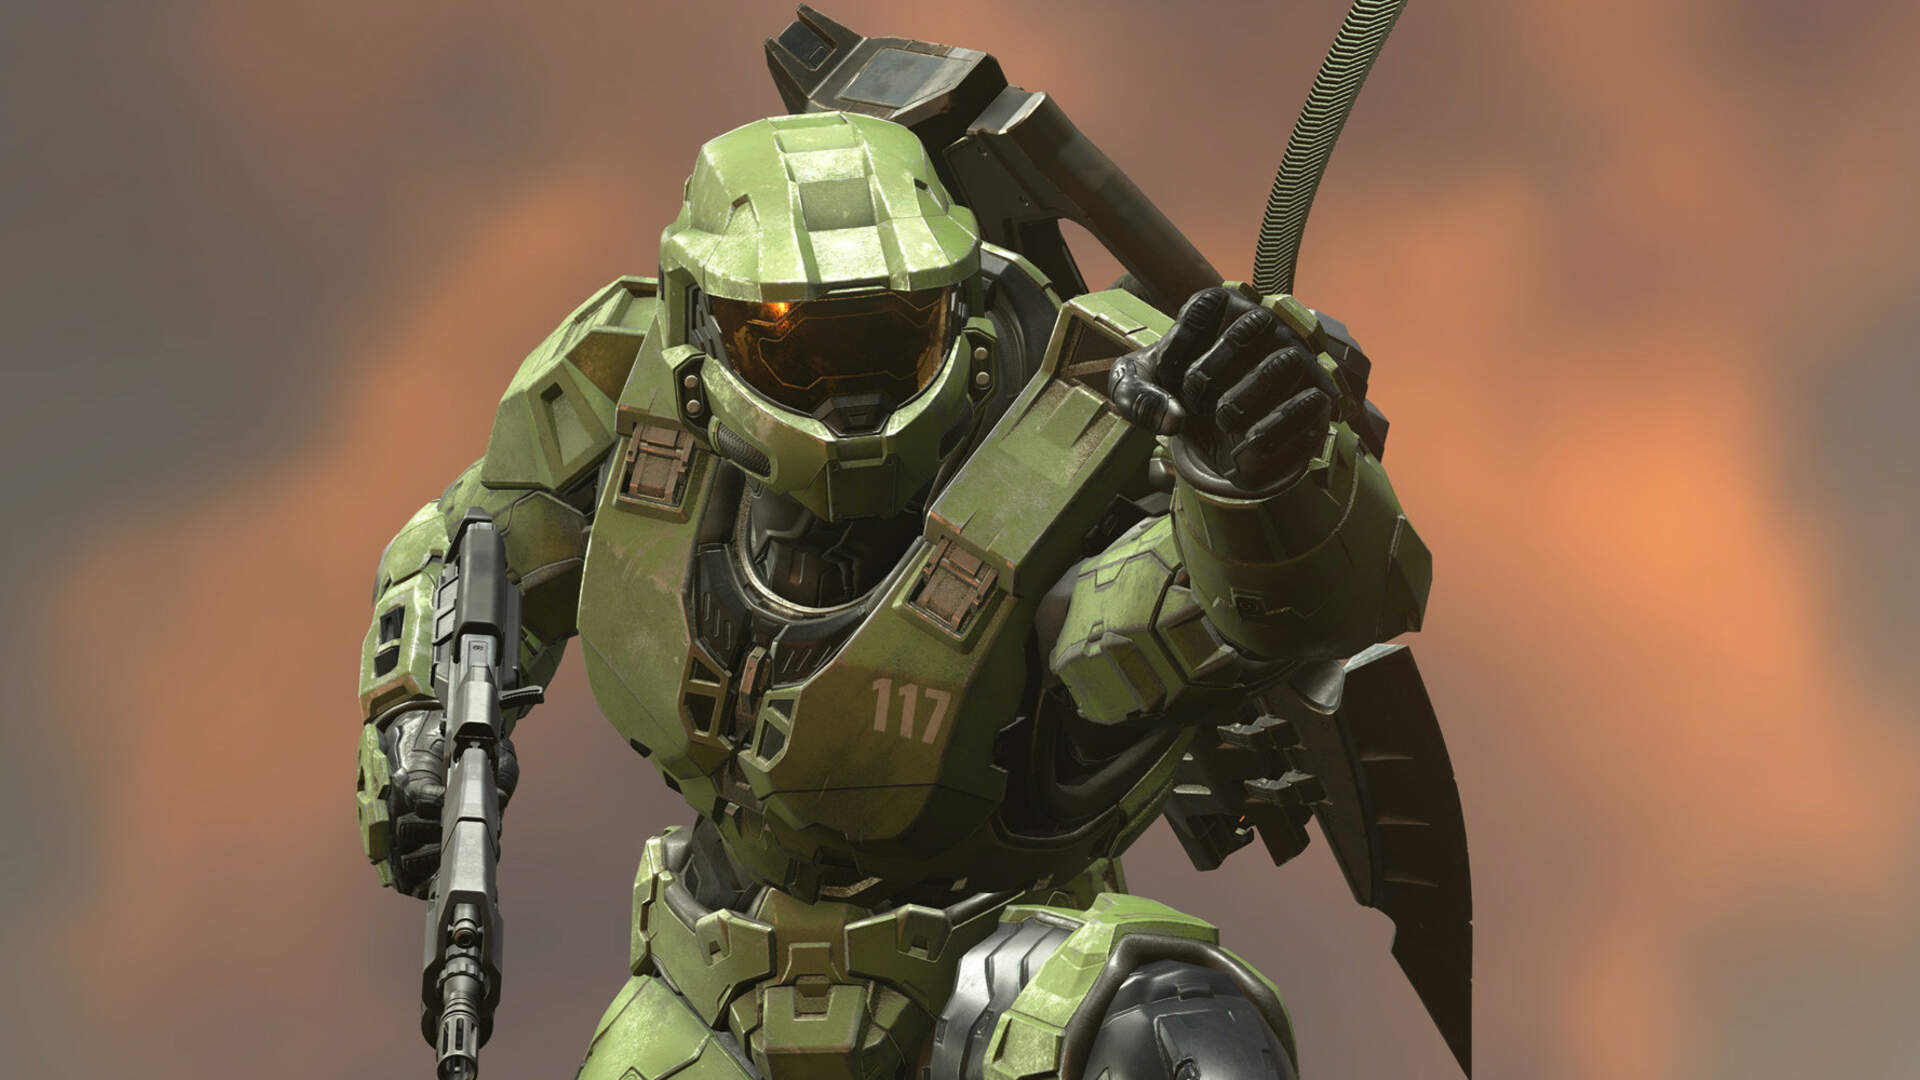 """343 Says There Are """"No Plans"""" To Push Halo Infinite Past 2021 or Off Xbox One"""